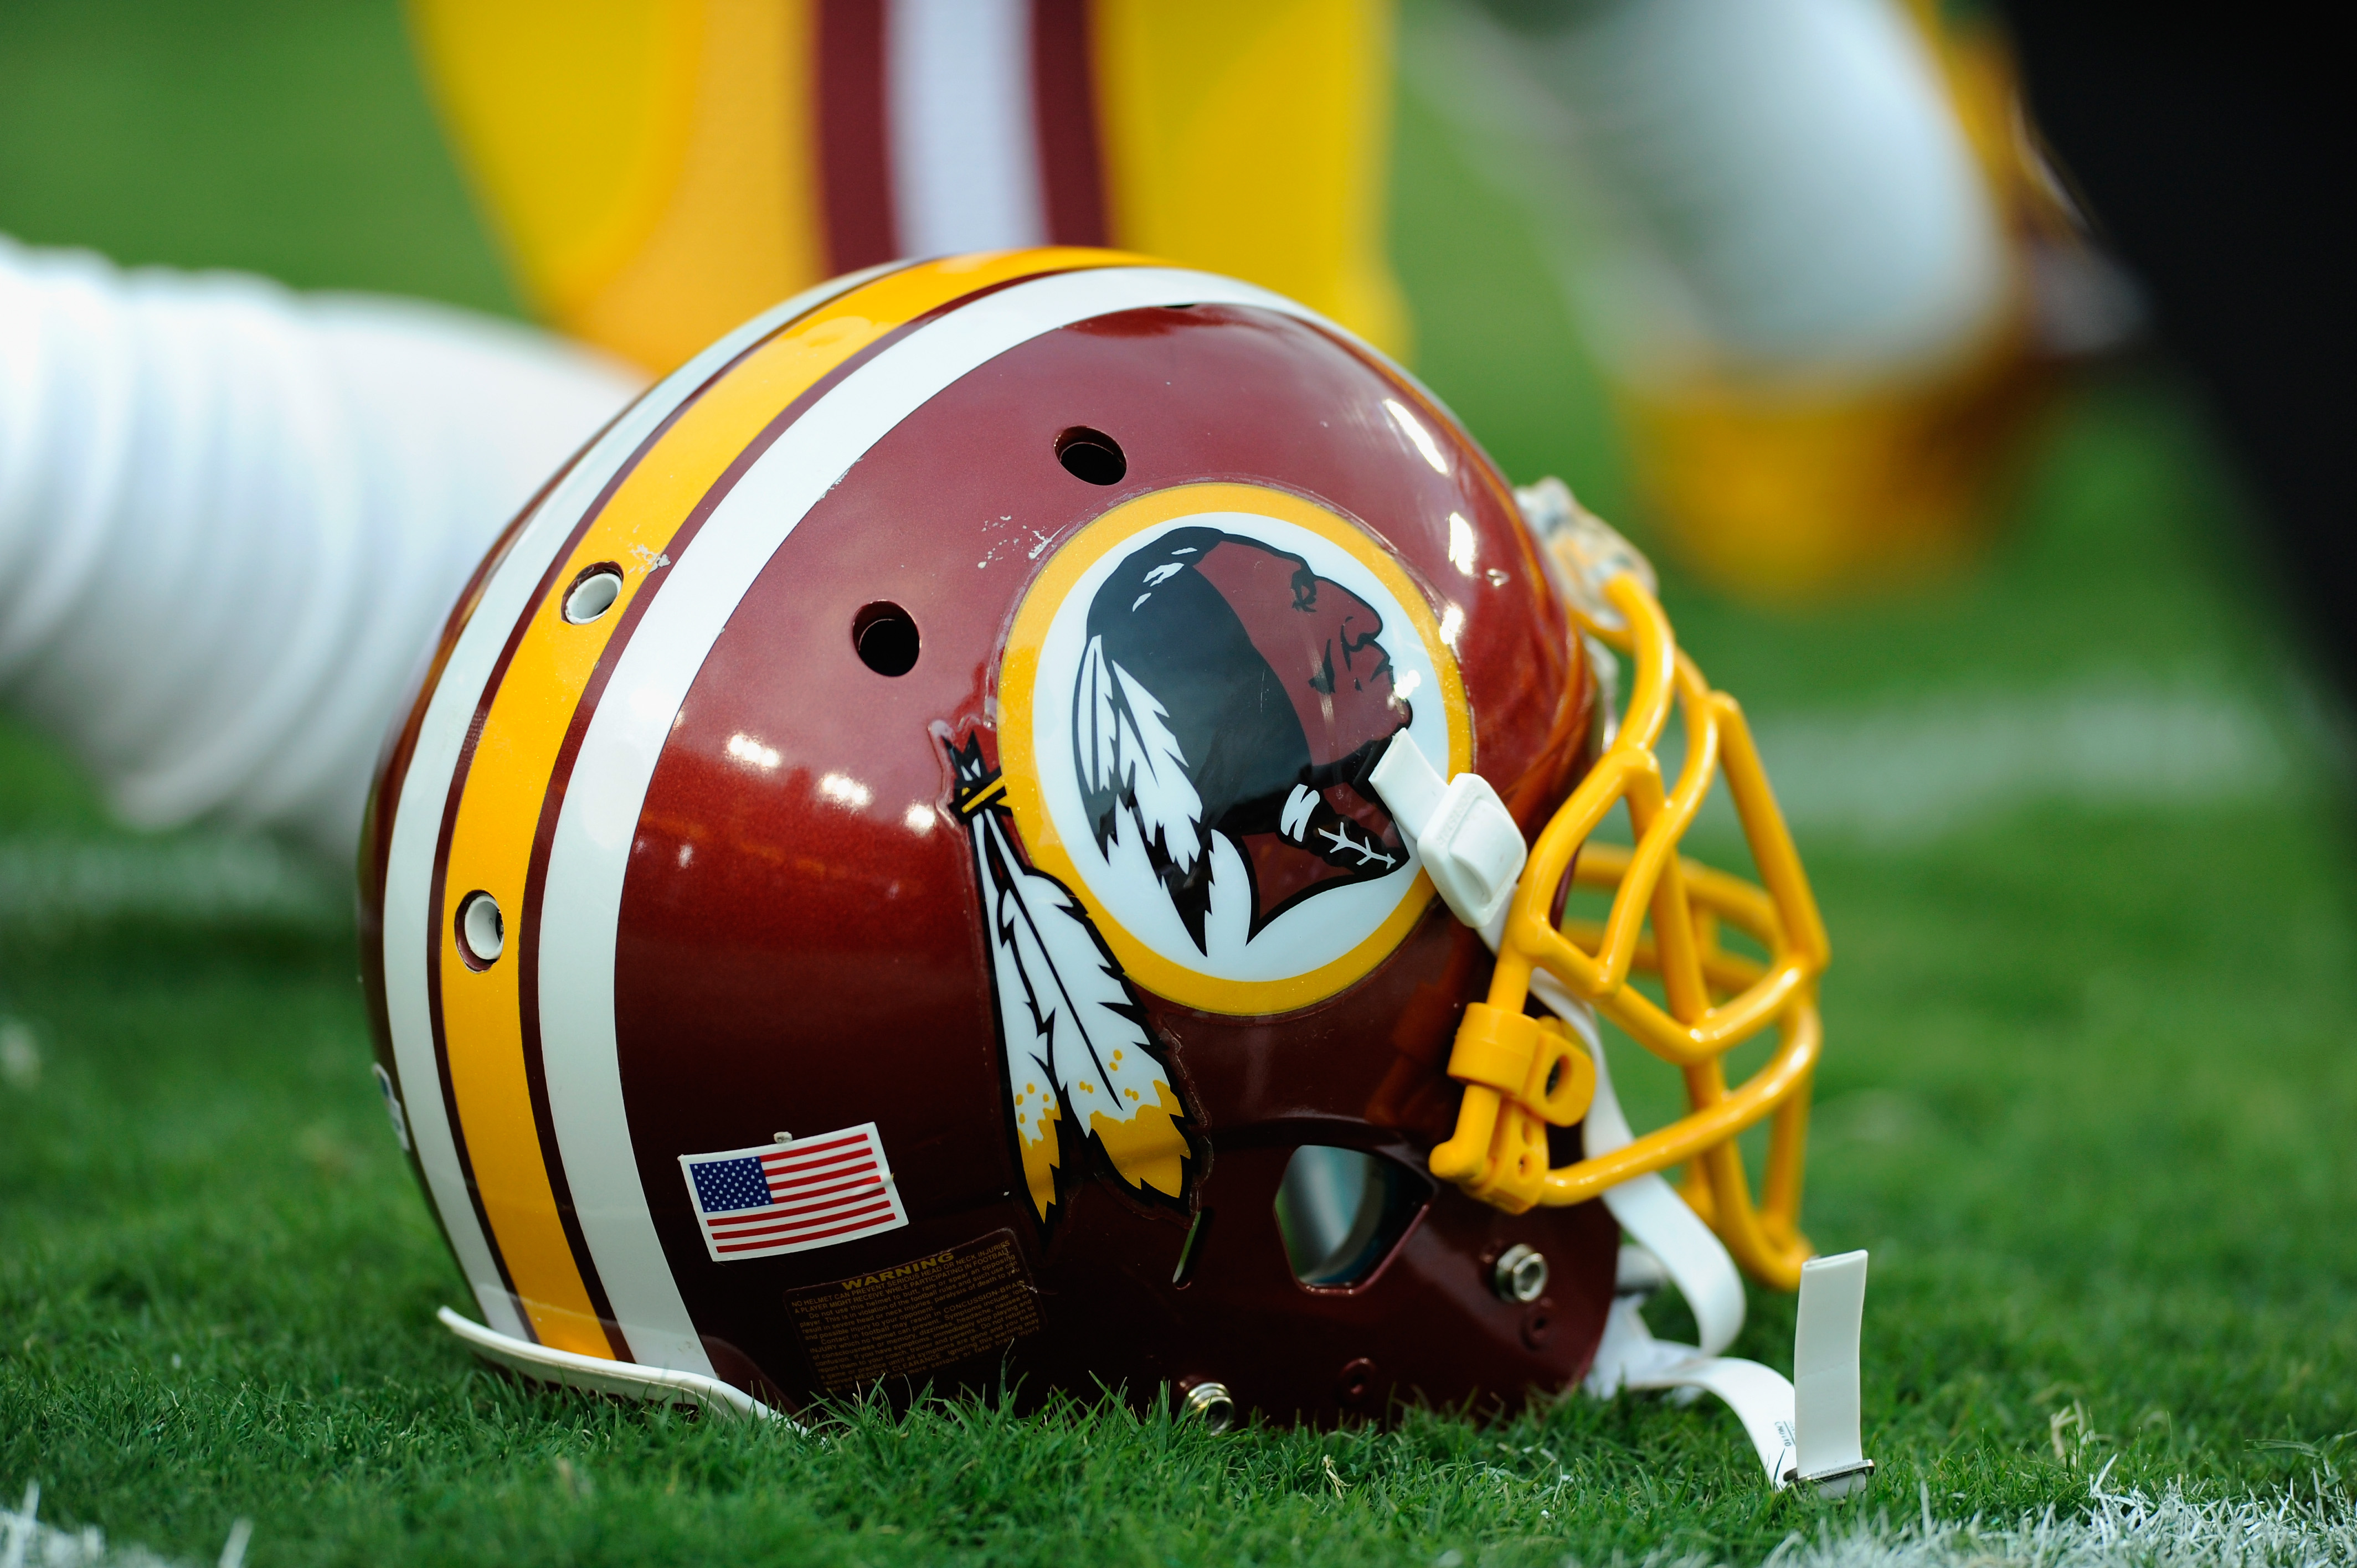 A Washington Redskins helmet sits on the grass during a preseason football game between the Redskins and Cleveland Browns at FedExField on August 18, 2014 in Landover, Maryland.